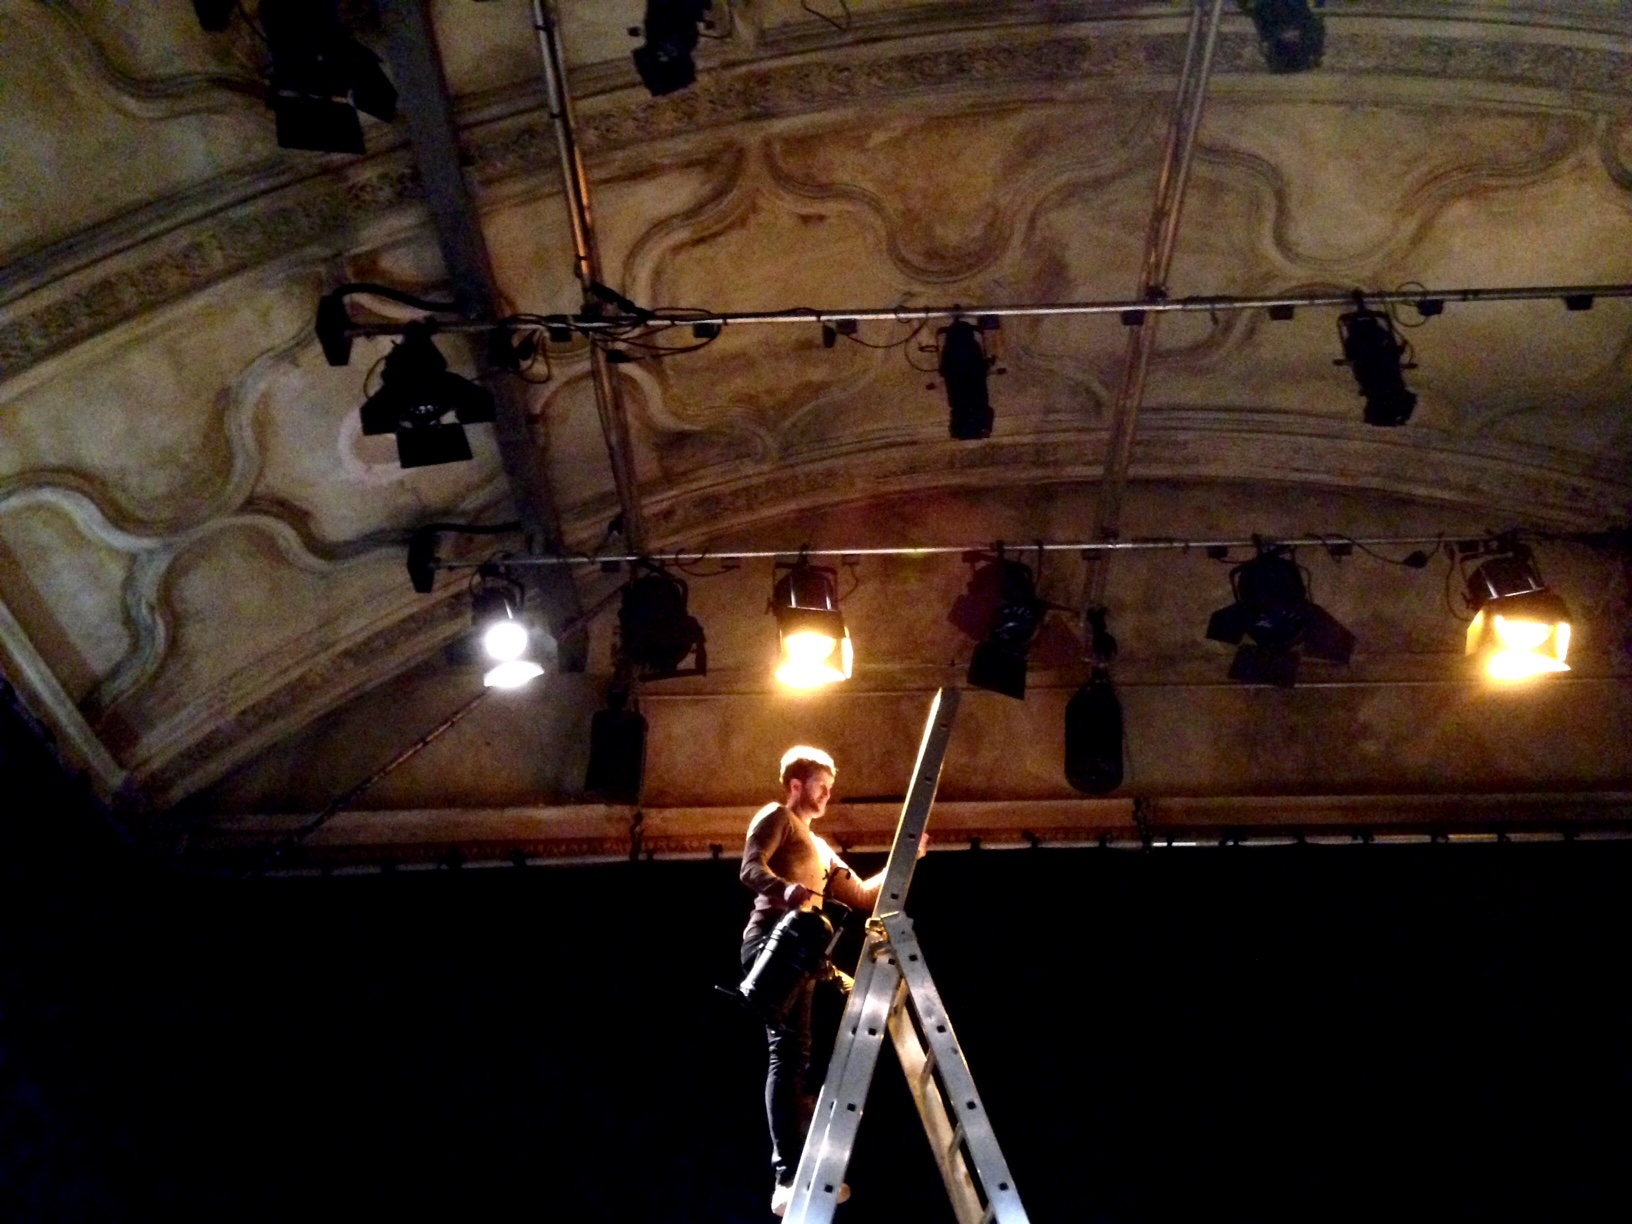 Didn't fancy a selfie for this one. After the Grand Hall, which is being rebuilt following a fire, the Council Chamber is our second largest space. It's been stripped back to its original vaulted ceiling and is used for mid-scale shows, gigs and even weddings which we have to do quick turnarounds for. Here I am setting up a lighting rig for a show in our 'cook up' programme.